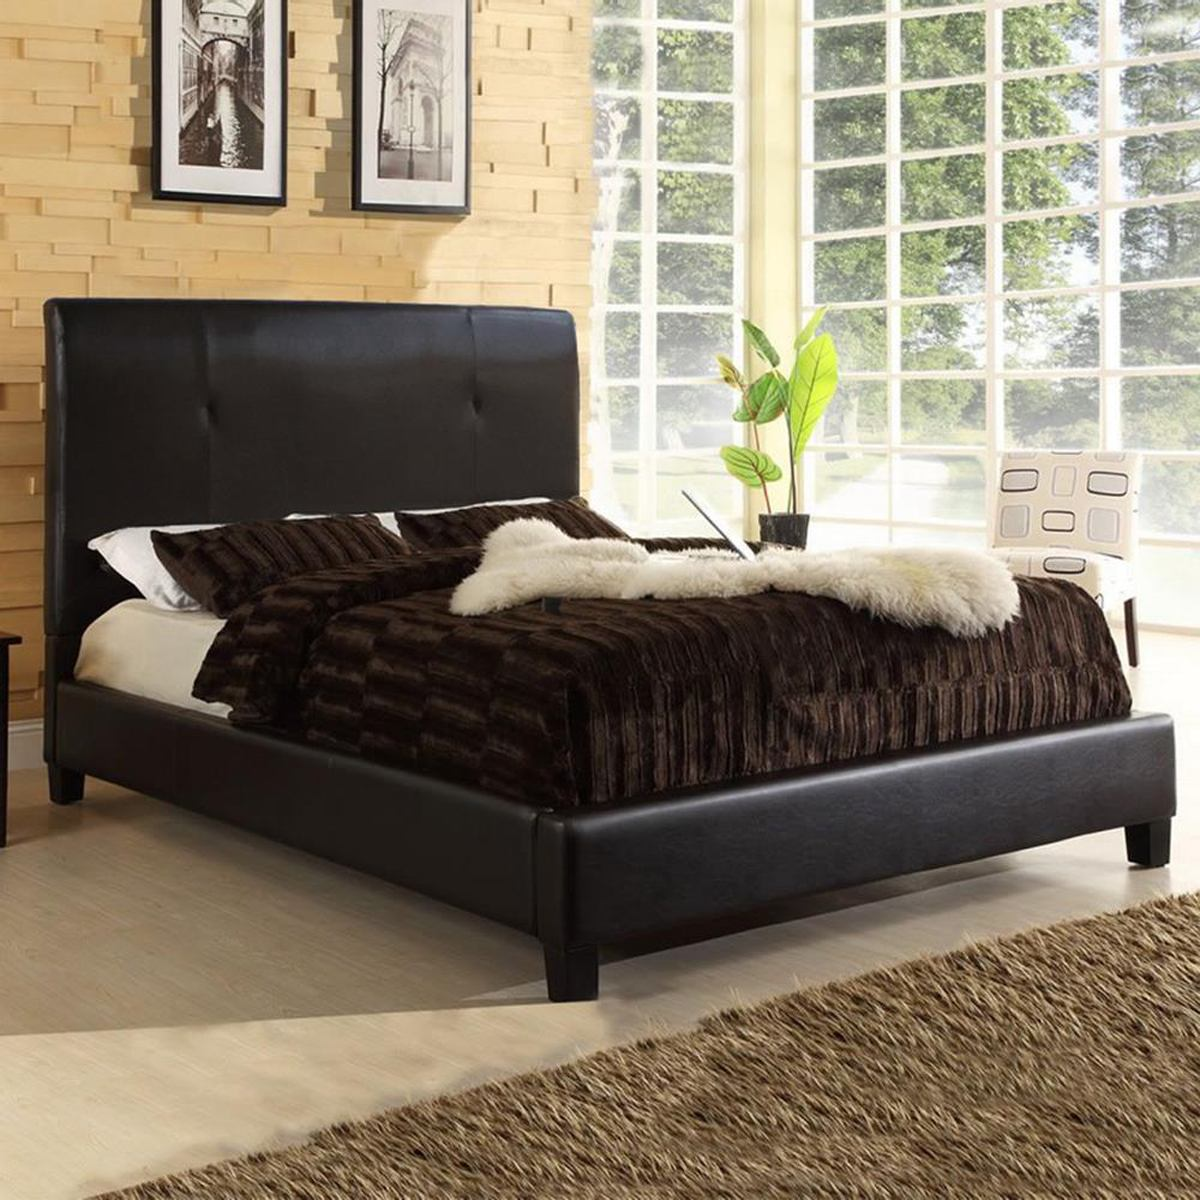 Baxton Studio Cambridge Full Bed in Dark Brown